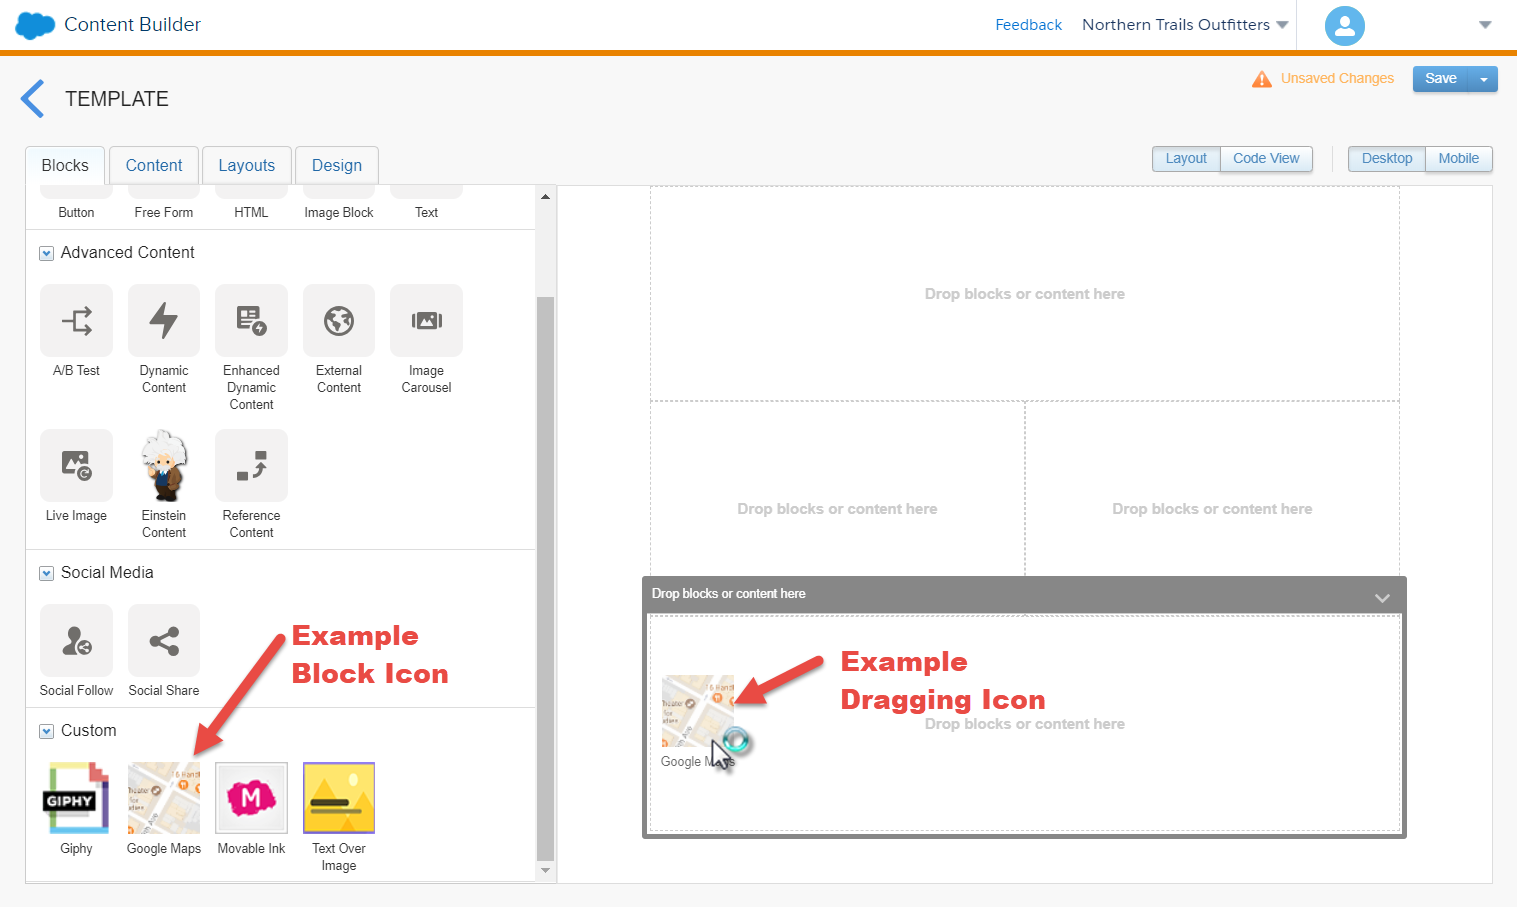 The Content Builder UI with arrows pointing at examples of the block icon and dragging icon